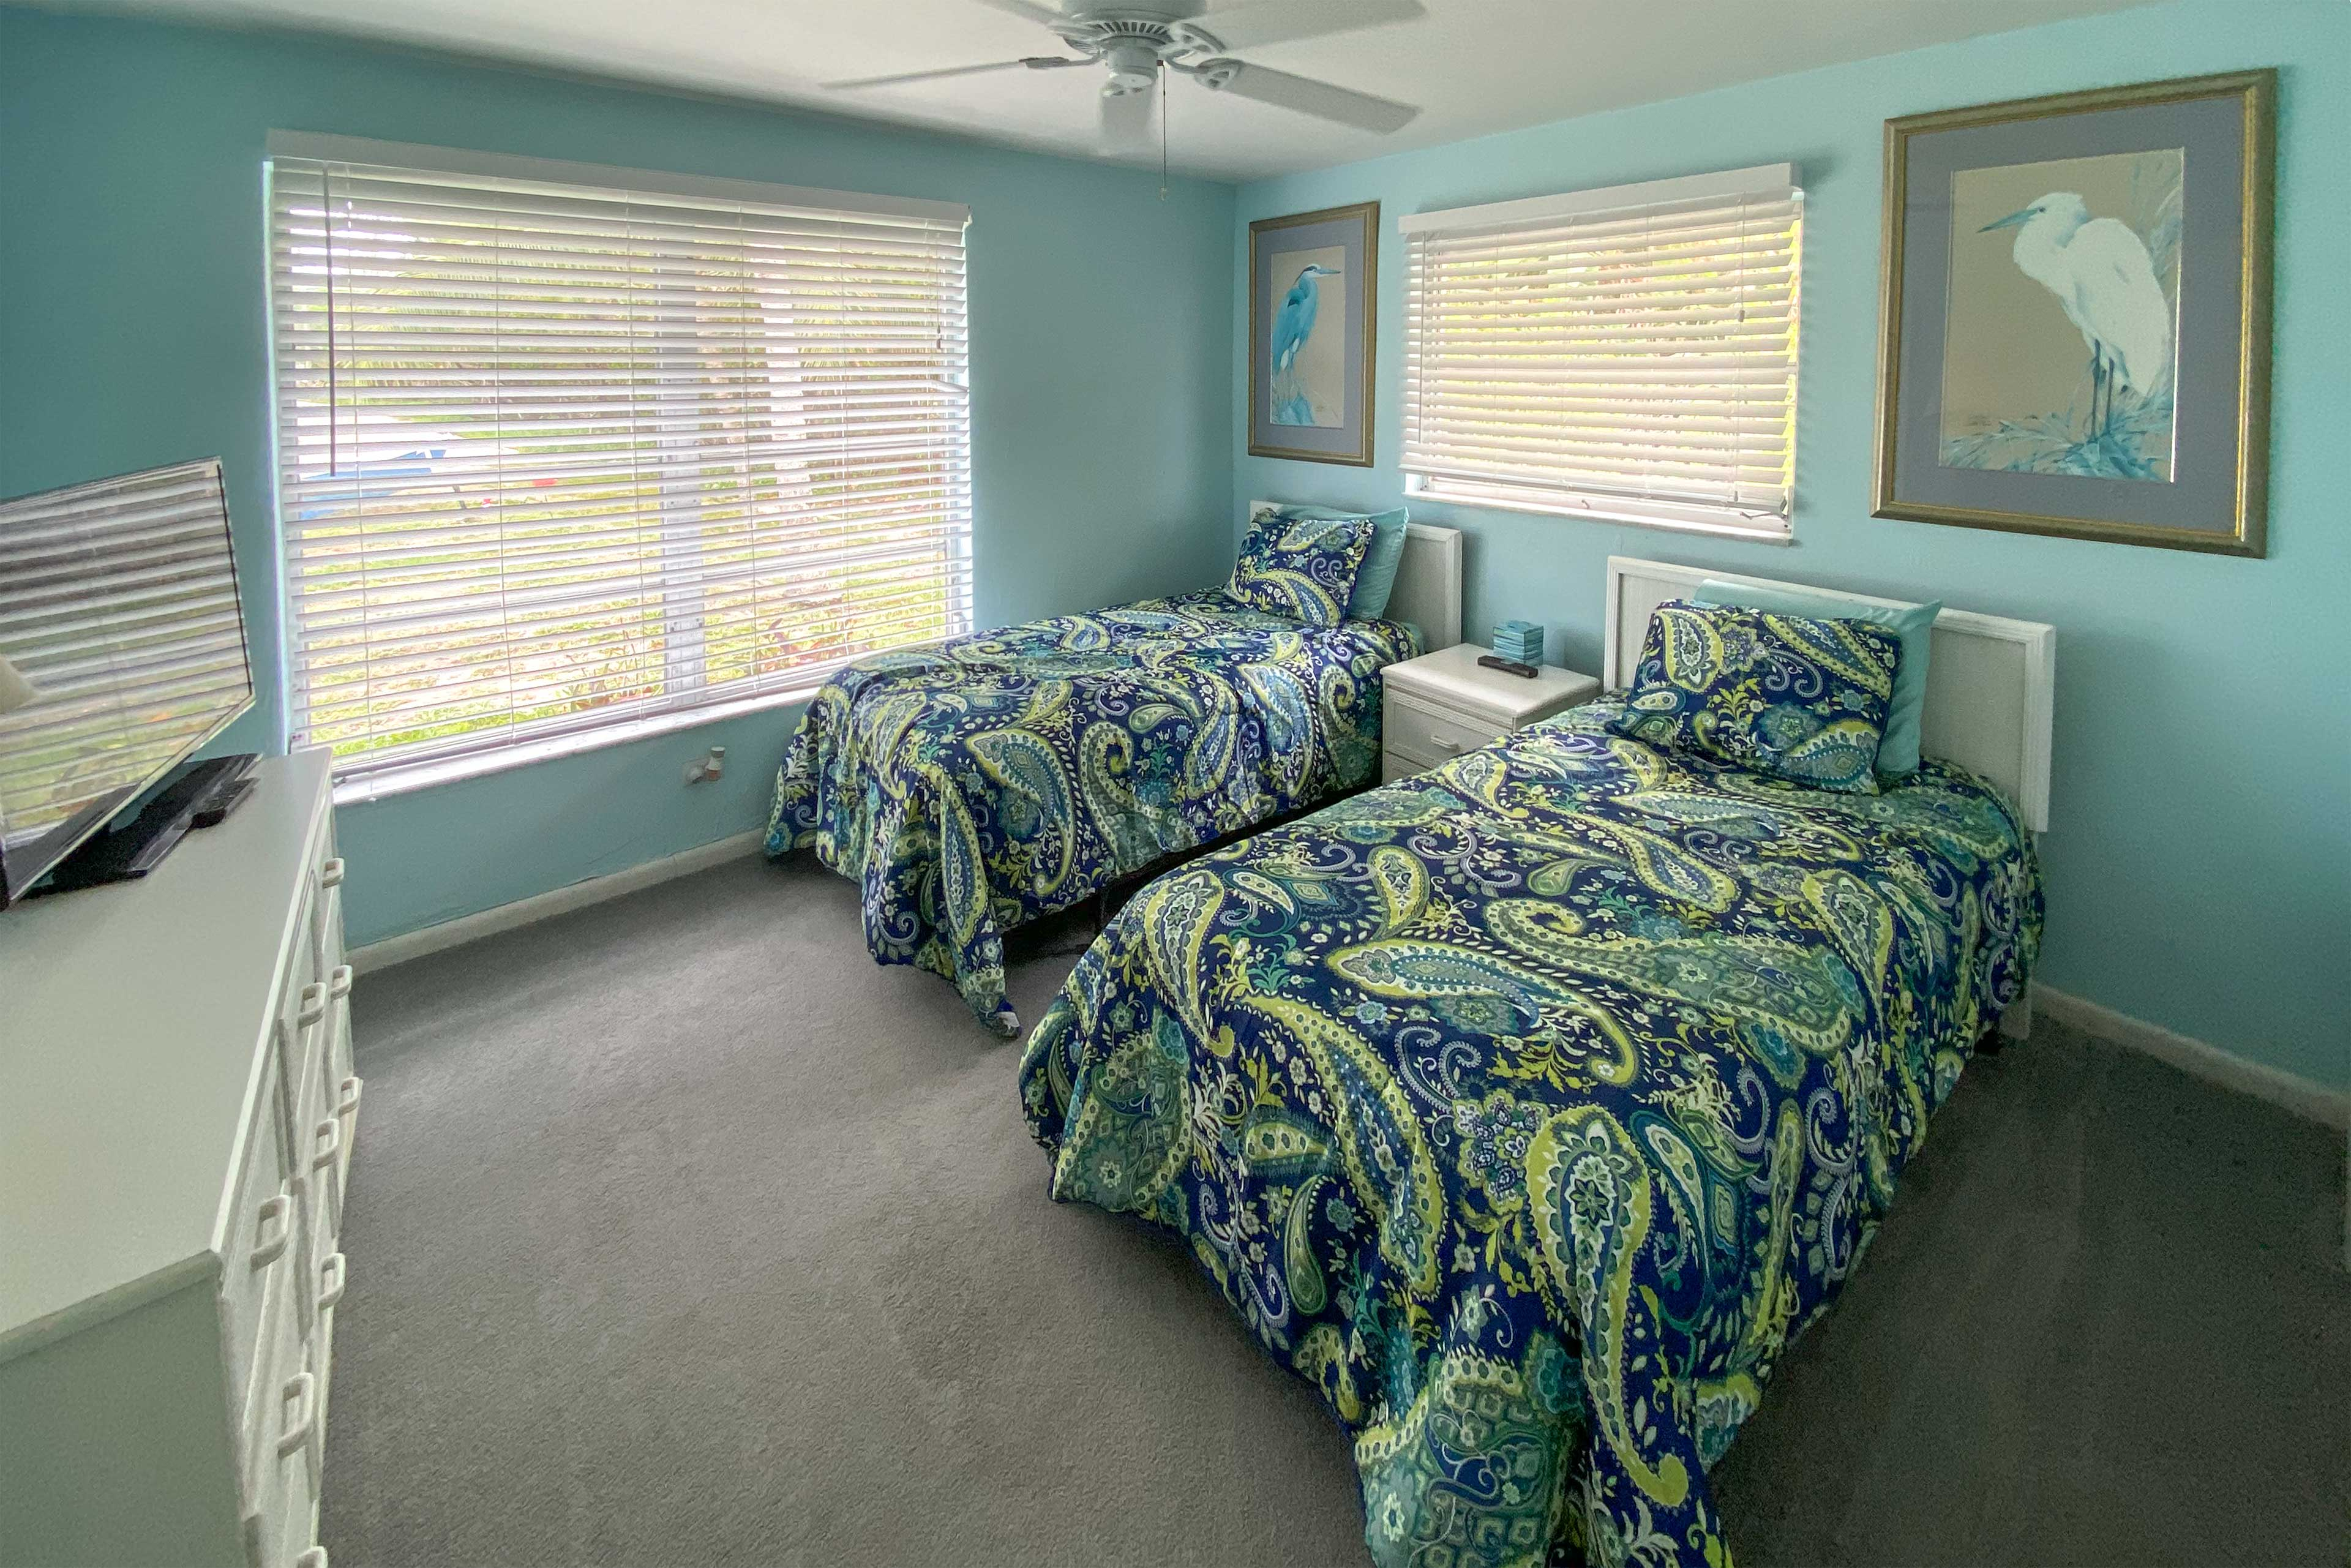 Bedroom 2 | 2 Twin Beds | Linens Provided